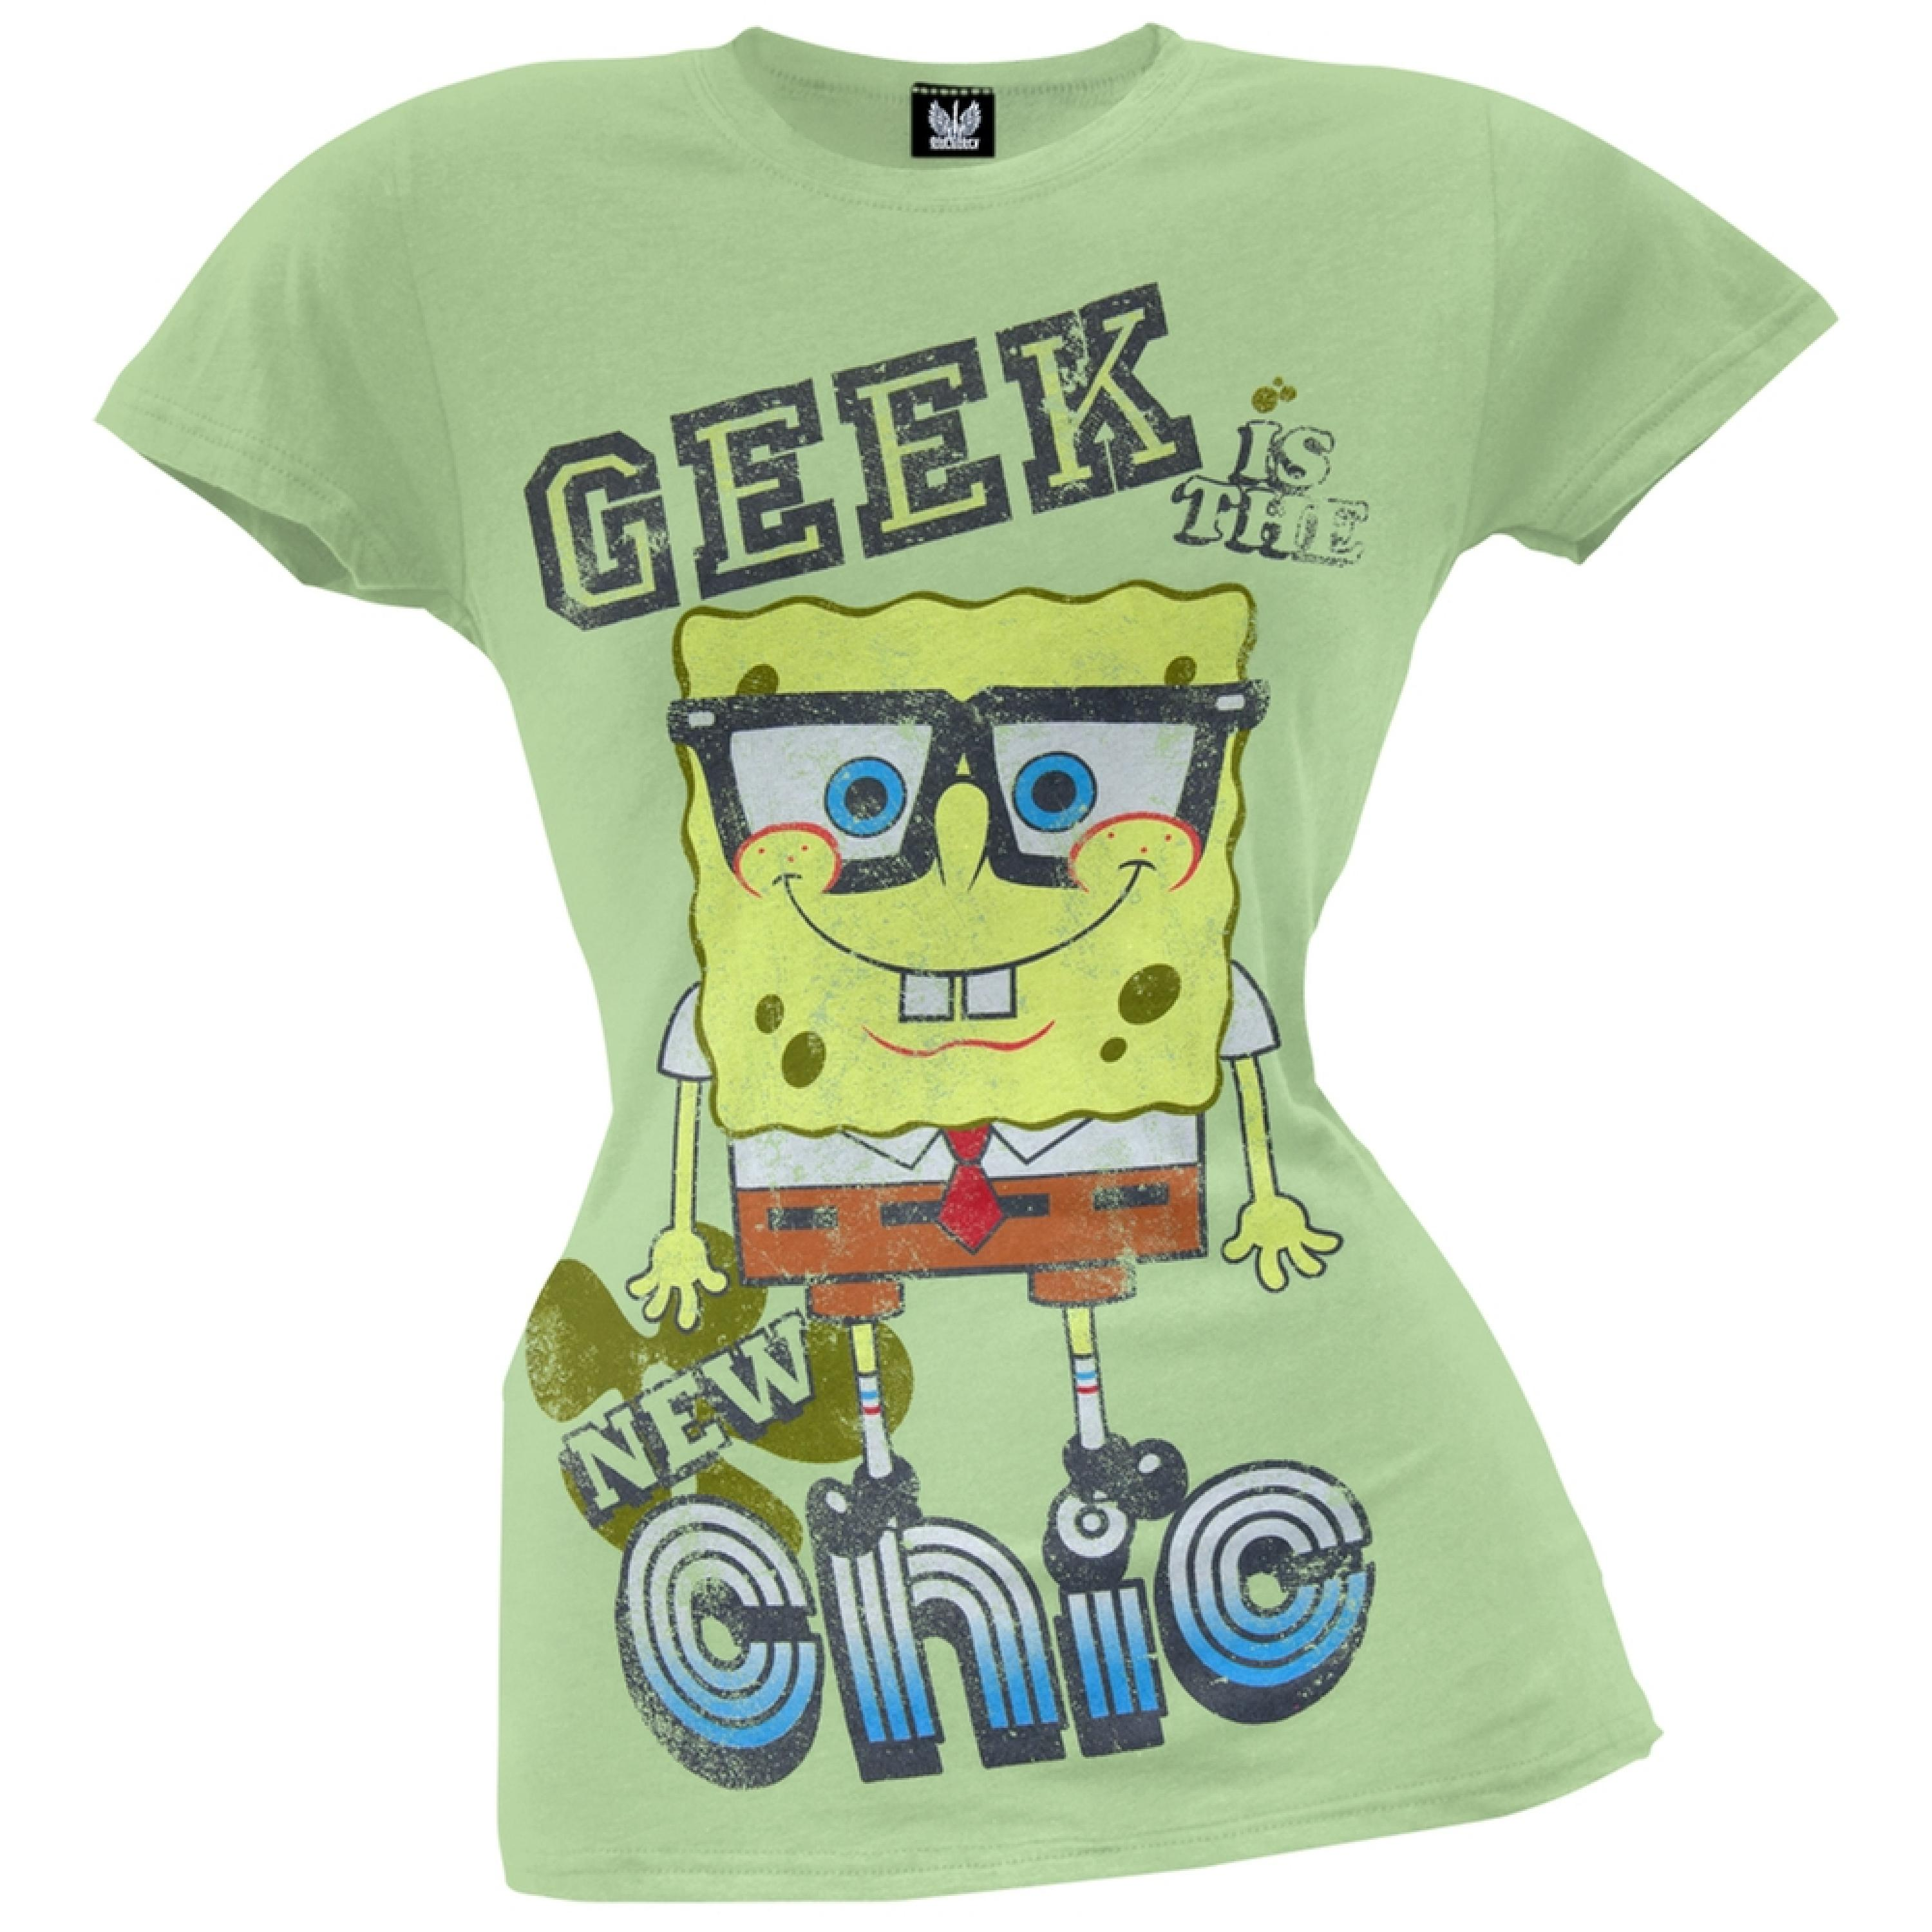 Spongebob Squarepants - Geek Is The New Chic Juniors T-Shirt